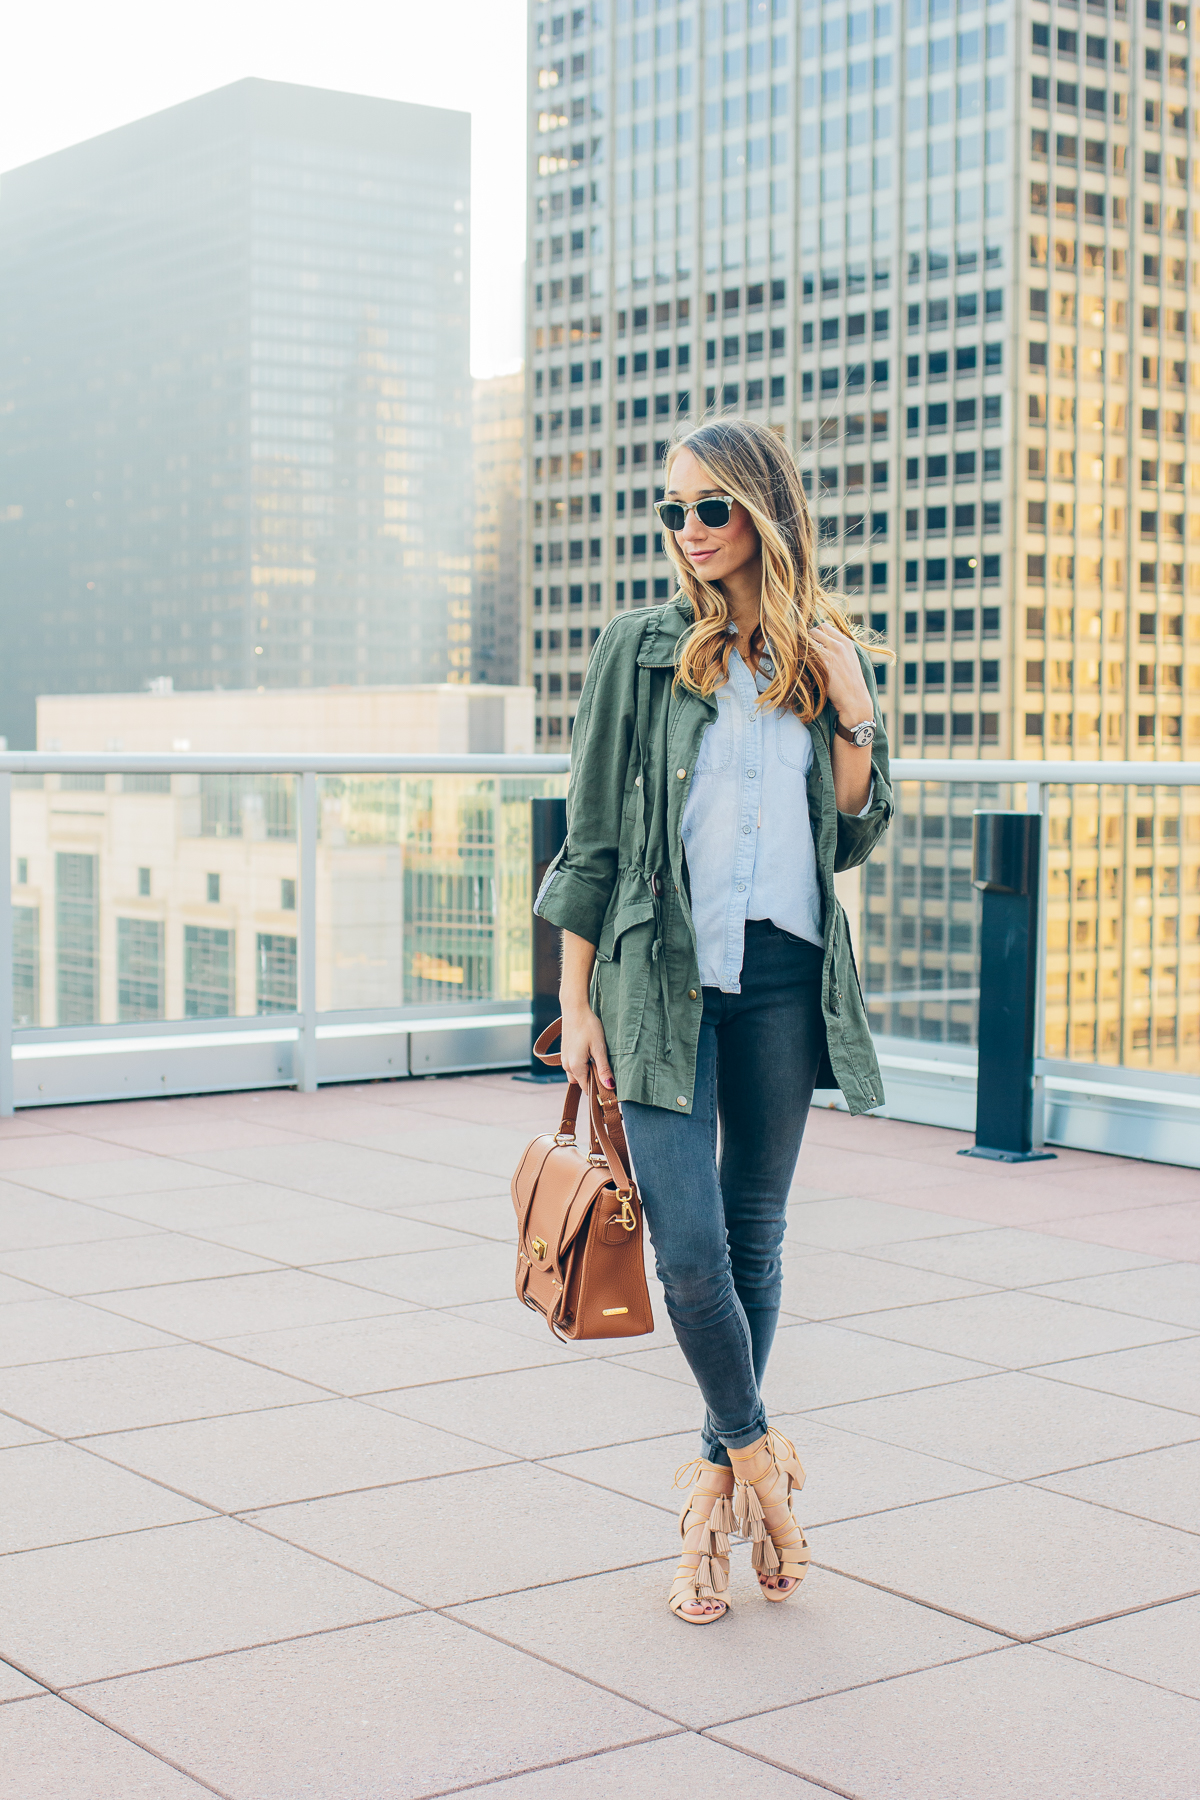 tassel sandals, military jacket, chambray, casual outfit — via @TheFoxandShe